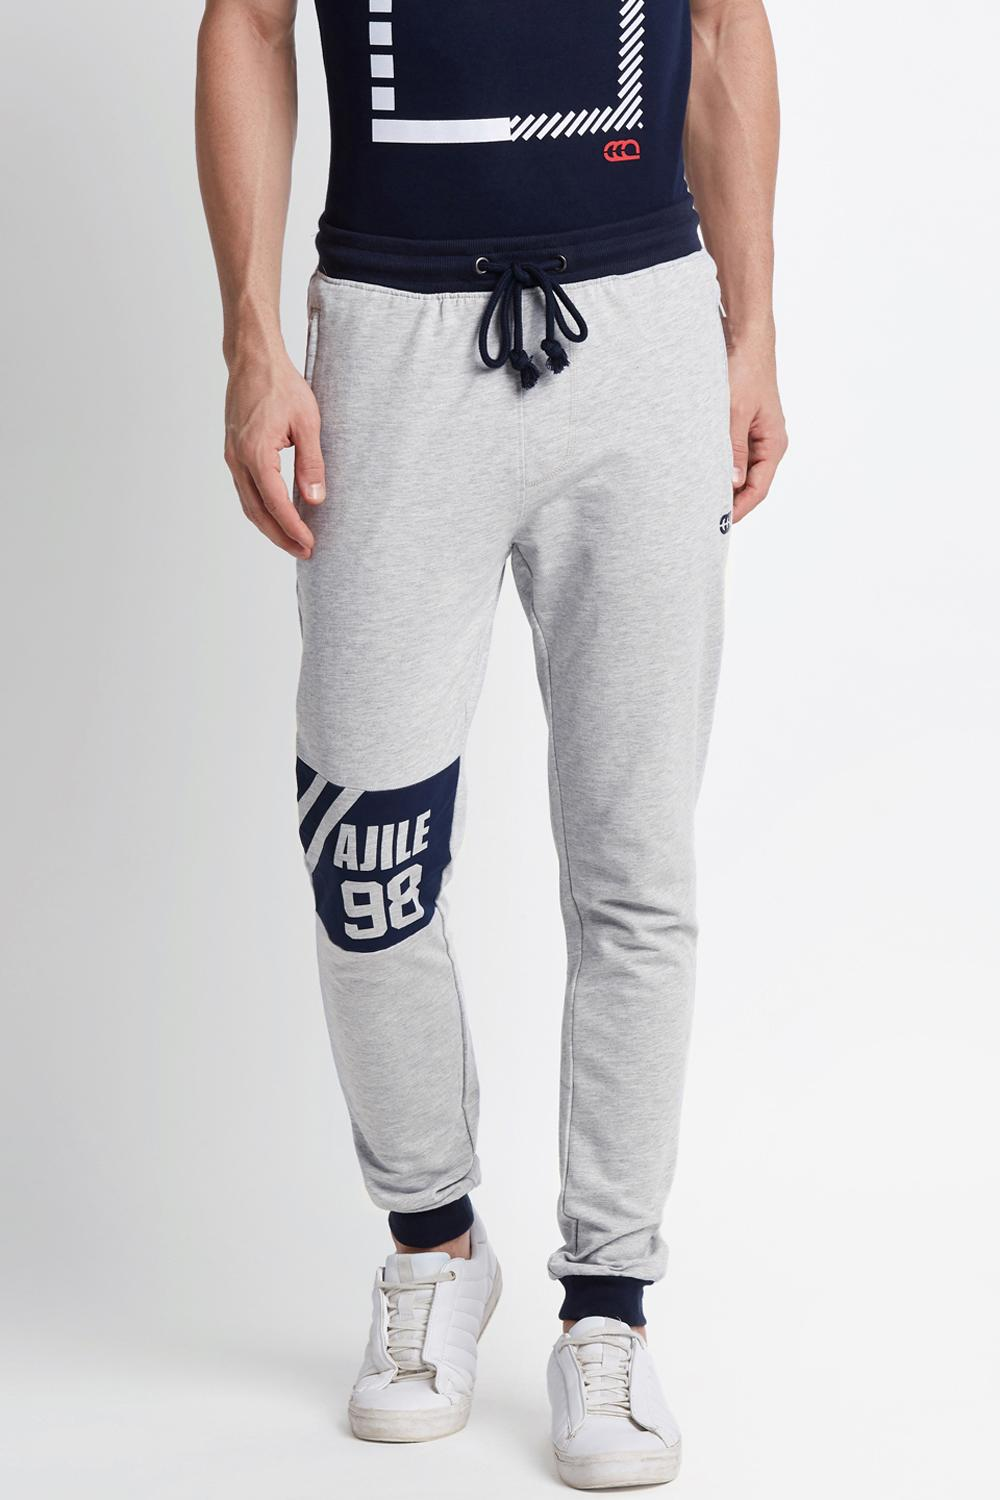 bde12709efe47 Buy Men Activewear Online in India - Track Pants